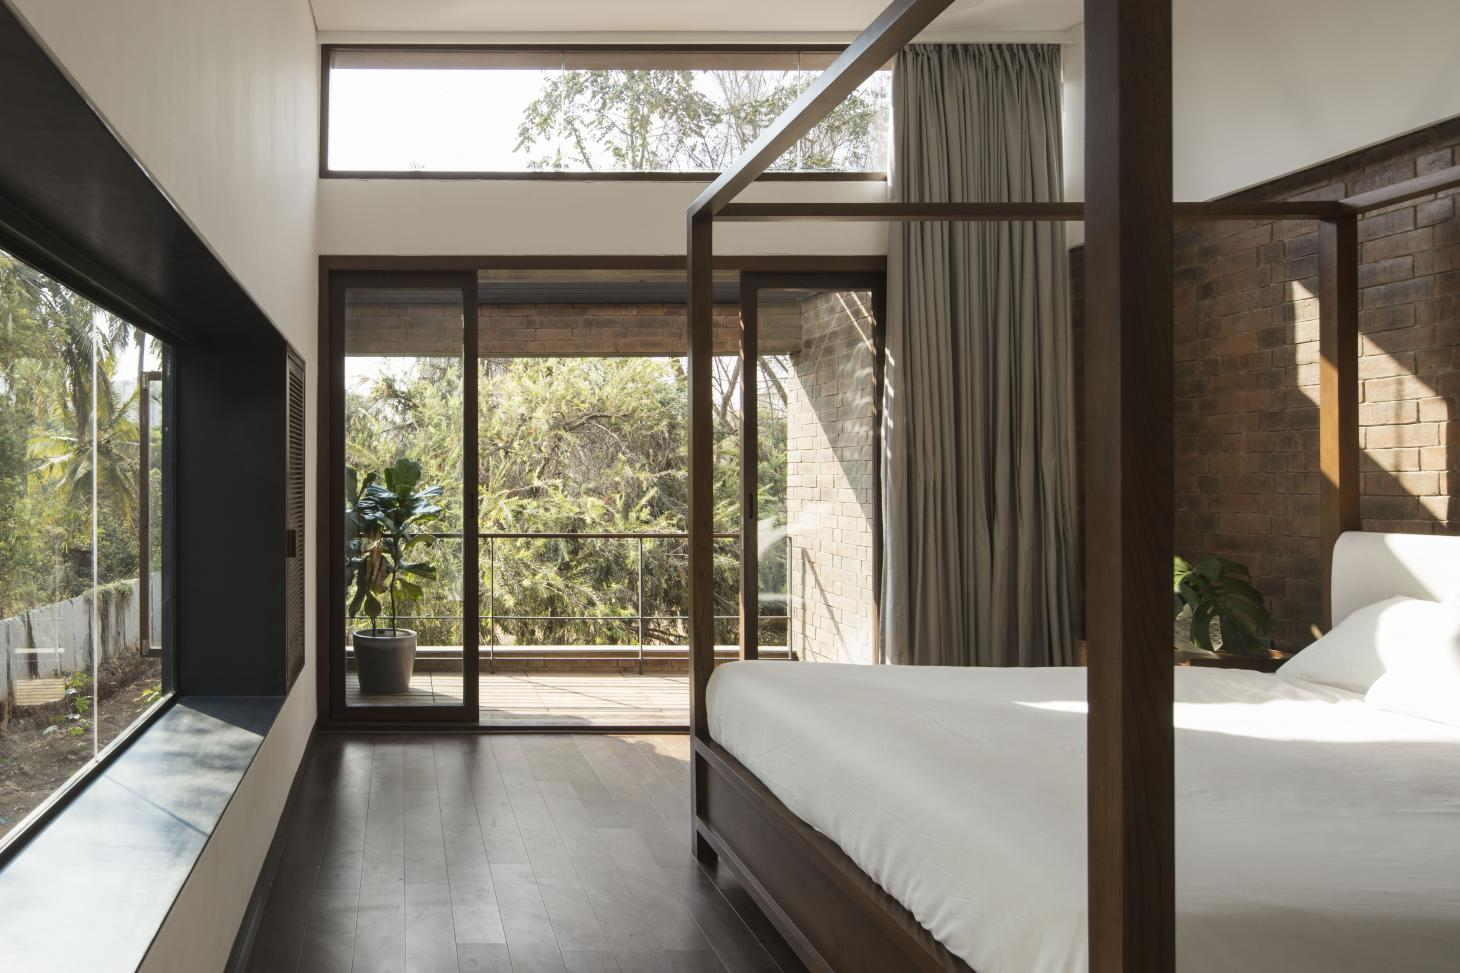 Brick House features large openings looking out to the greenery